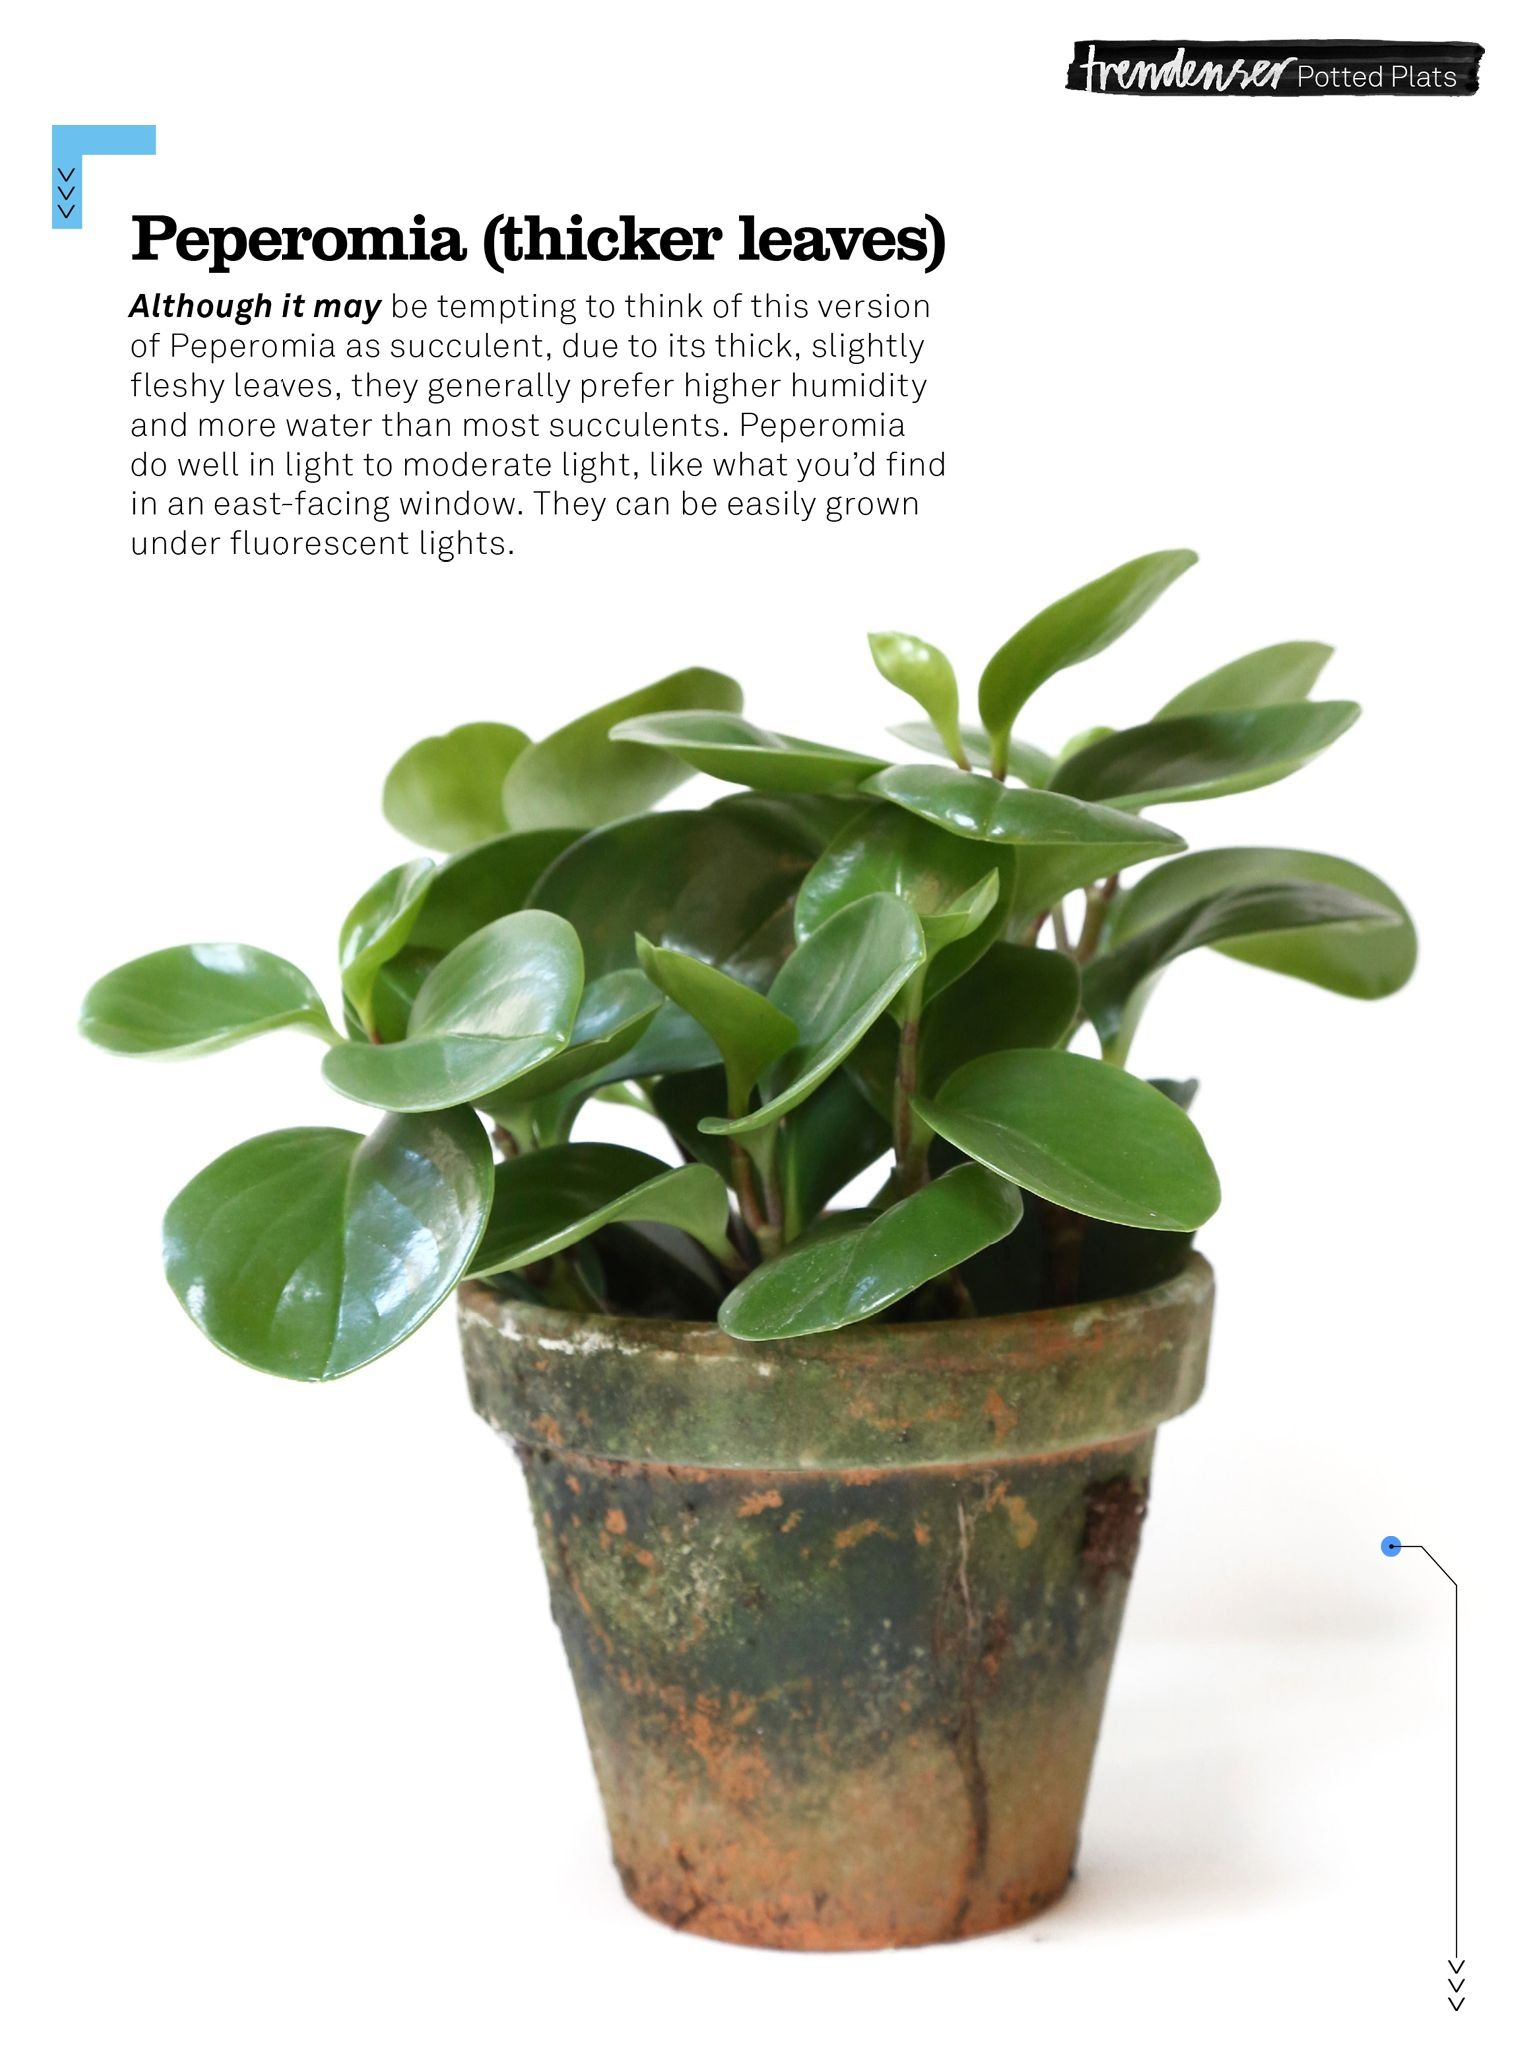 Peperomia Plant Thick Leaves The